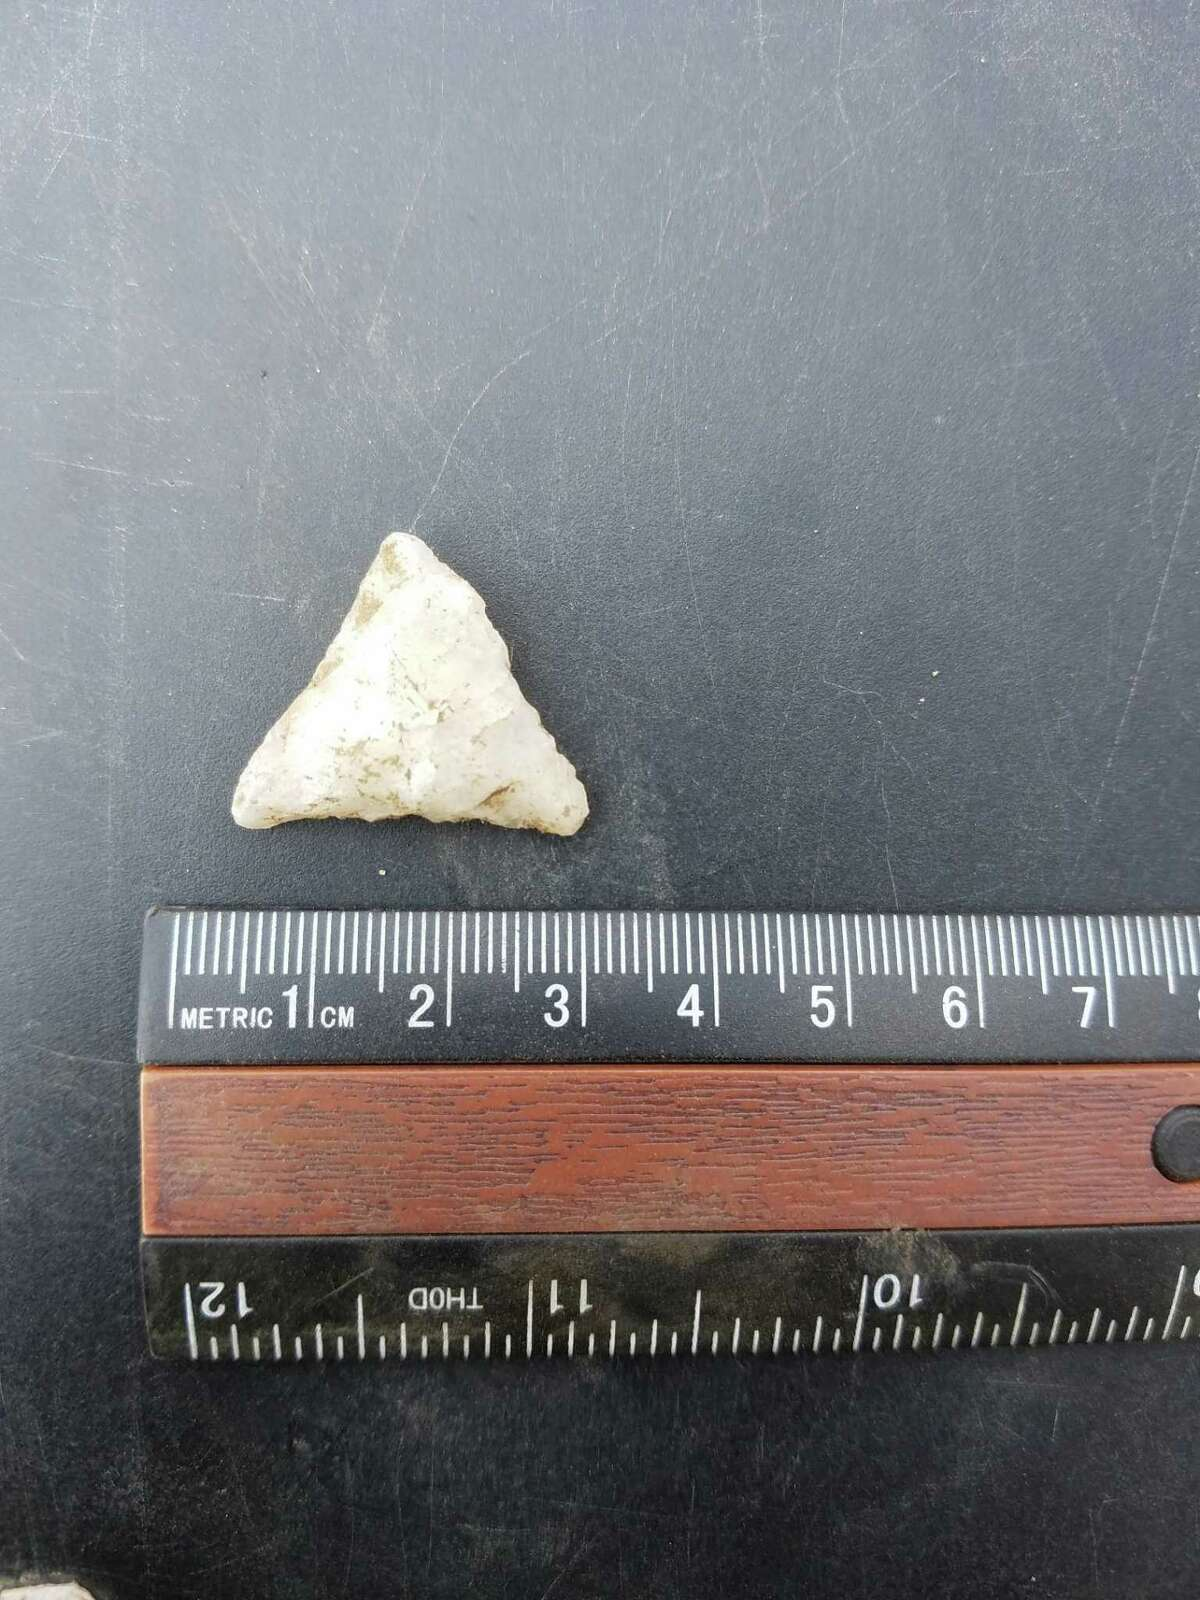 A quartz-point arrowhead unearthed at the Walk Bridge construction zone in East Norwalk.